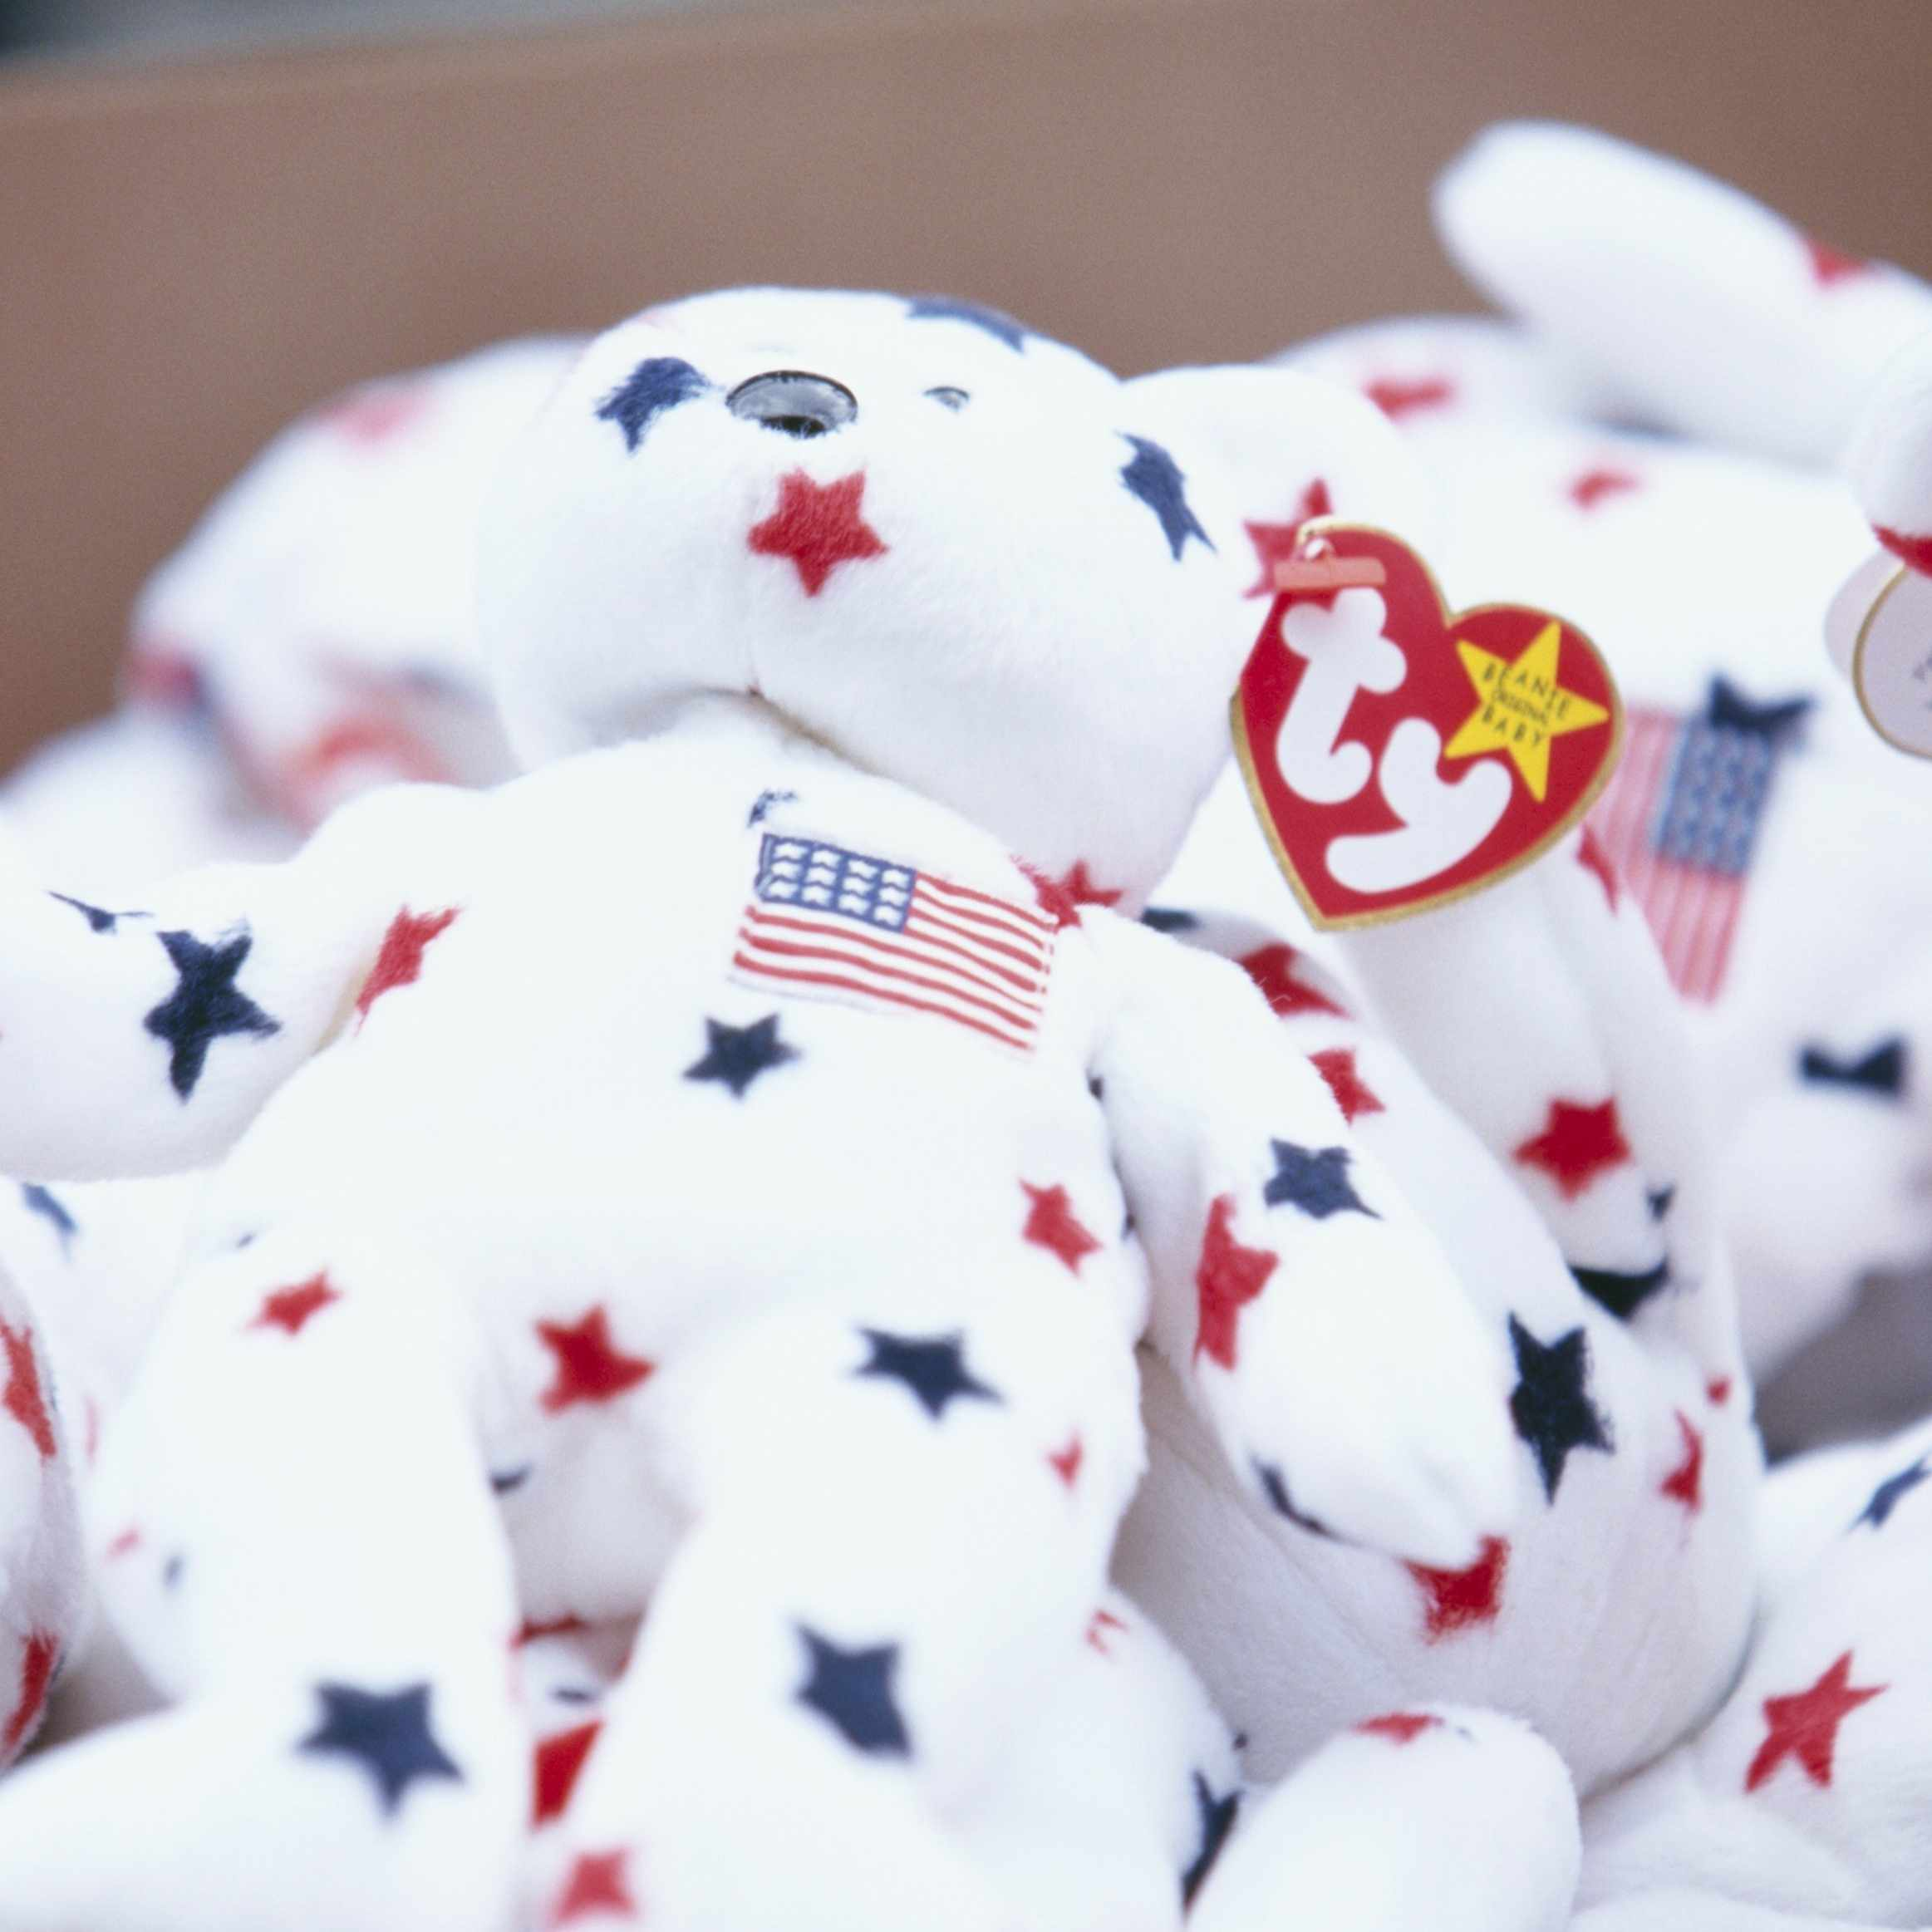 d5f8f0d4aa9 How to Sell Your Beanie Babies